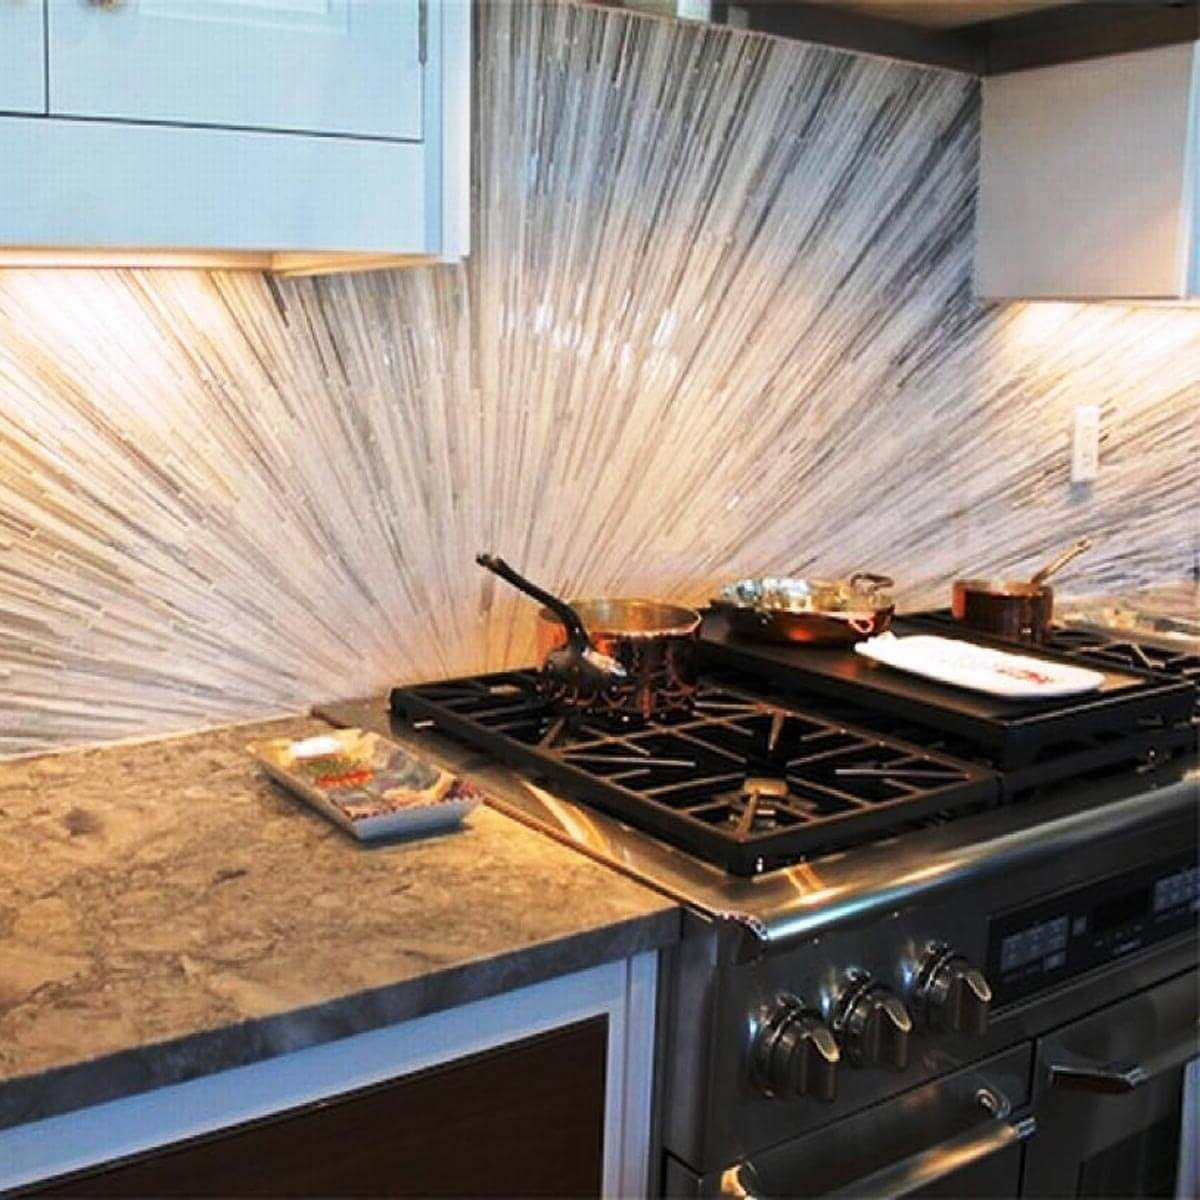 Backsplash Materials: 30 Kitchen Backsplash Ideas